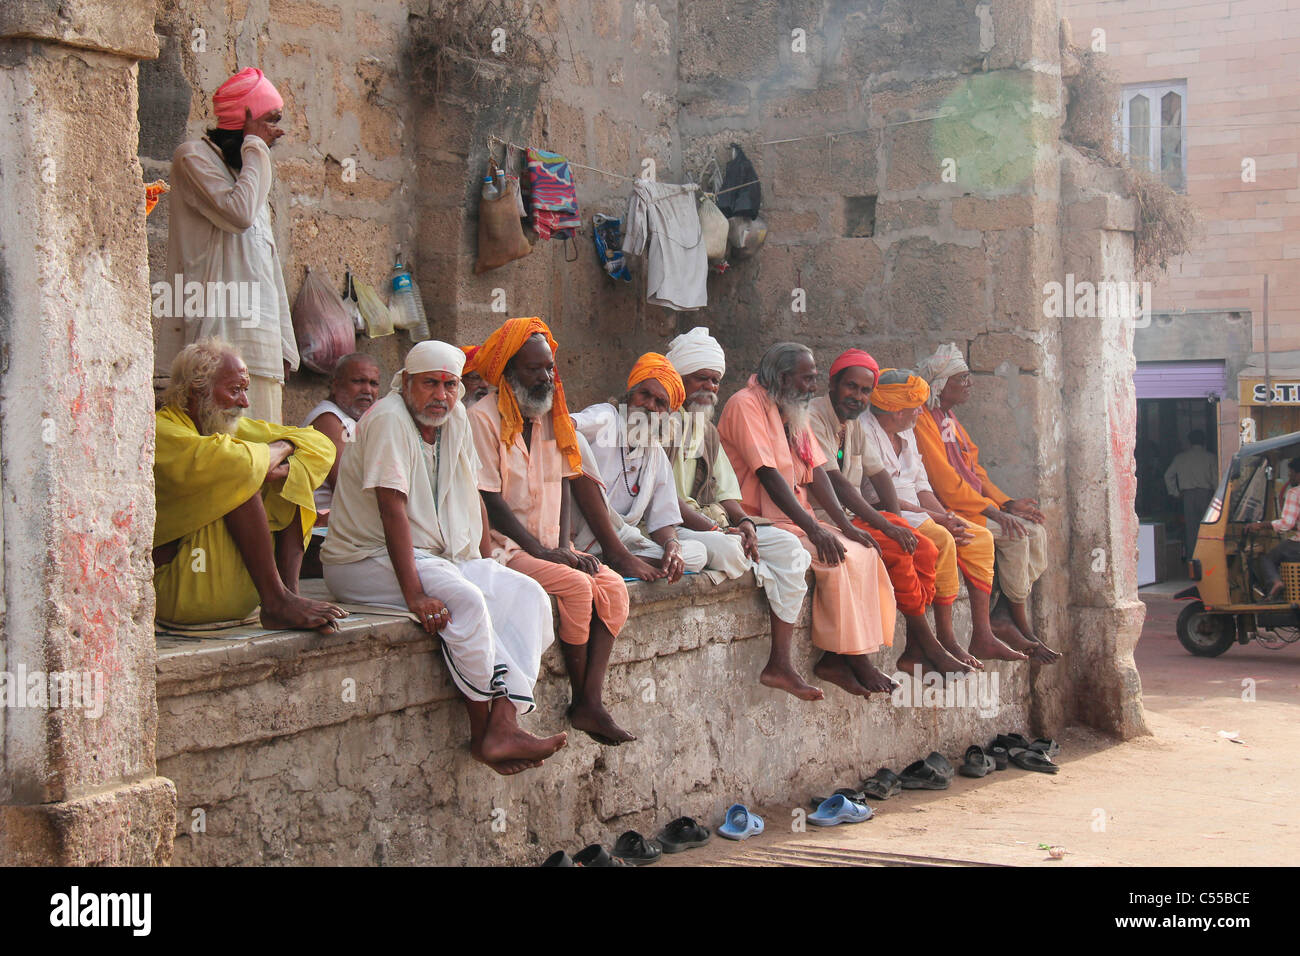 A group of Sadhus ( saints) sitting together in Dwarka temple, Gujarat,India - Stock Image